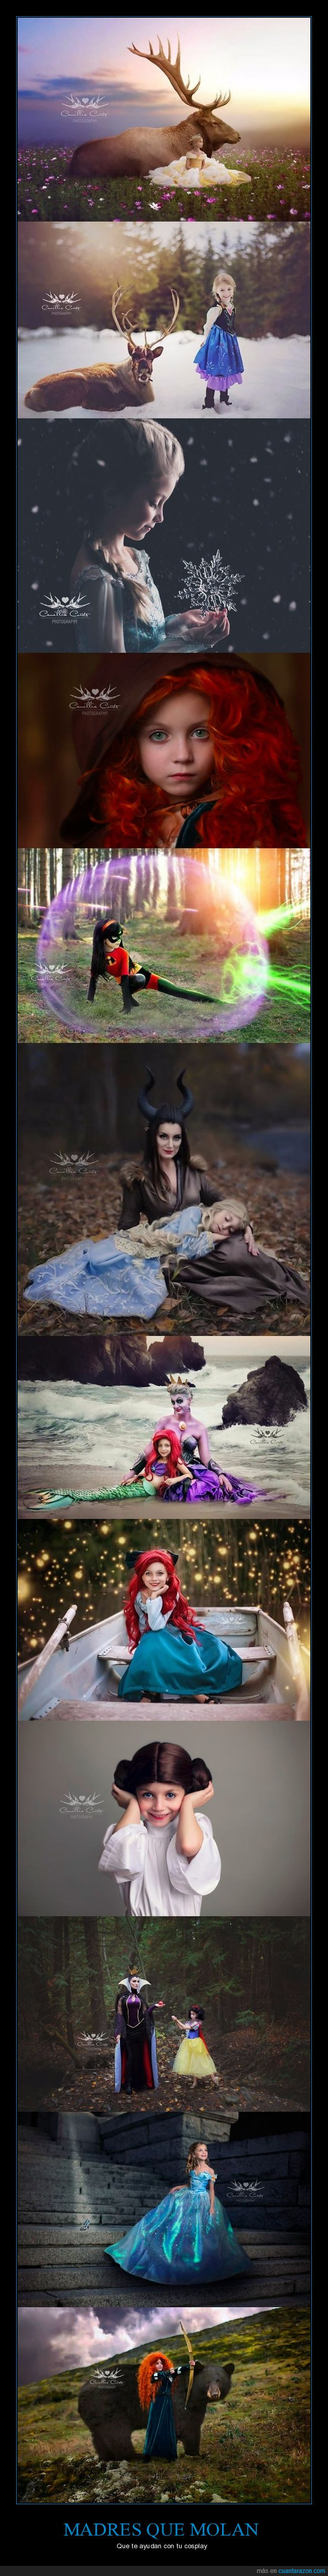 cosplay,disney,hija,madre